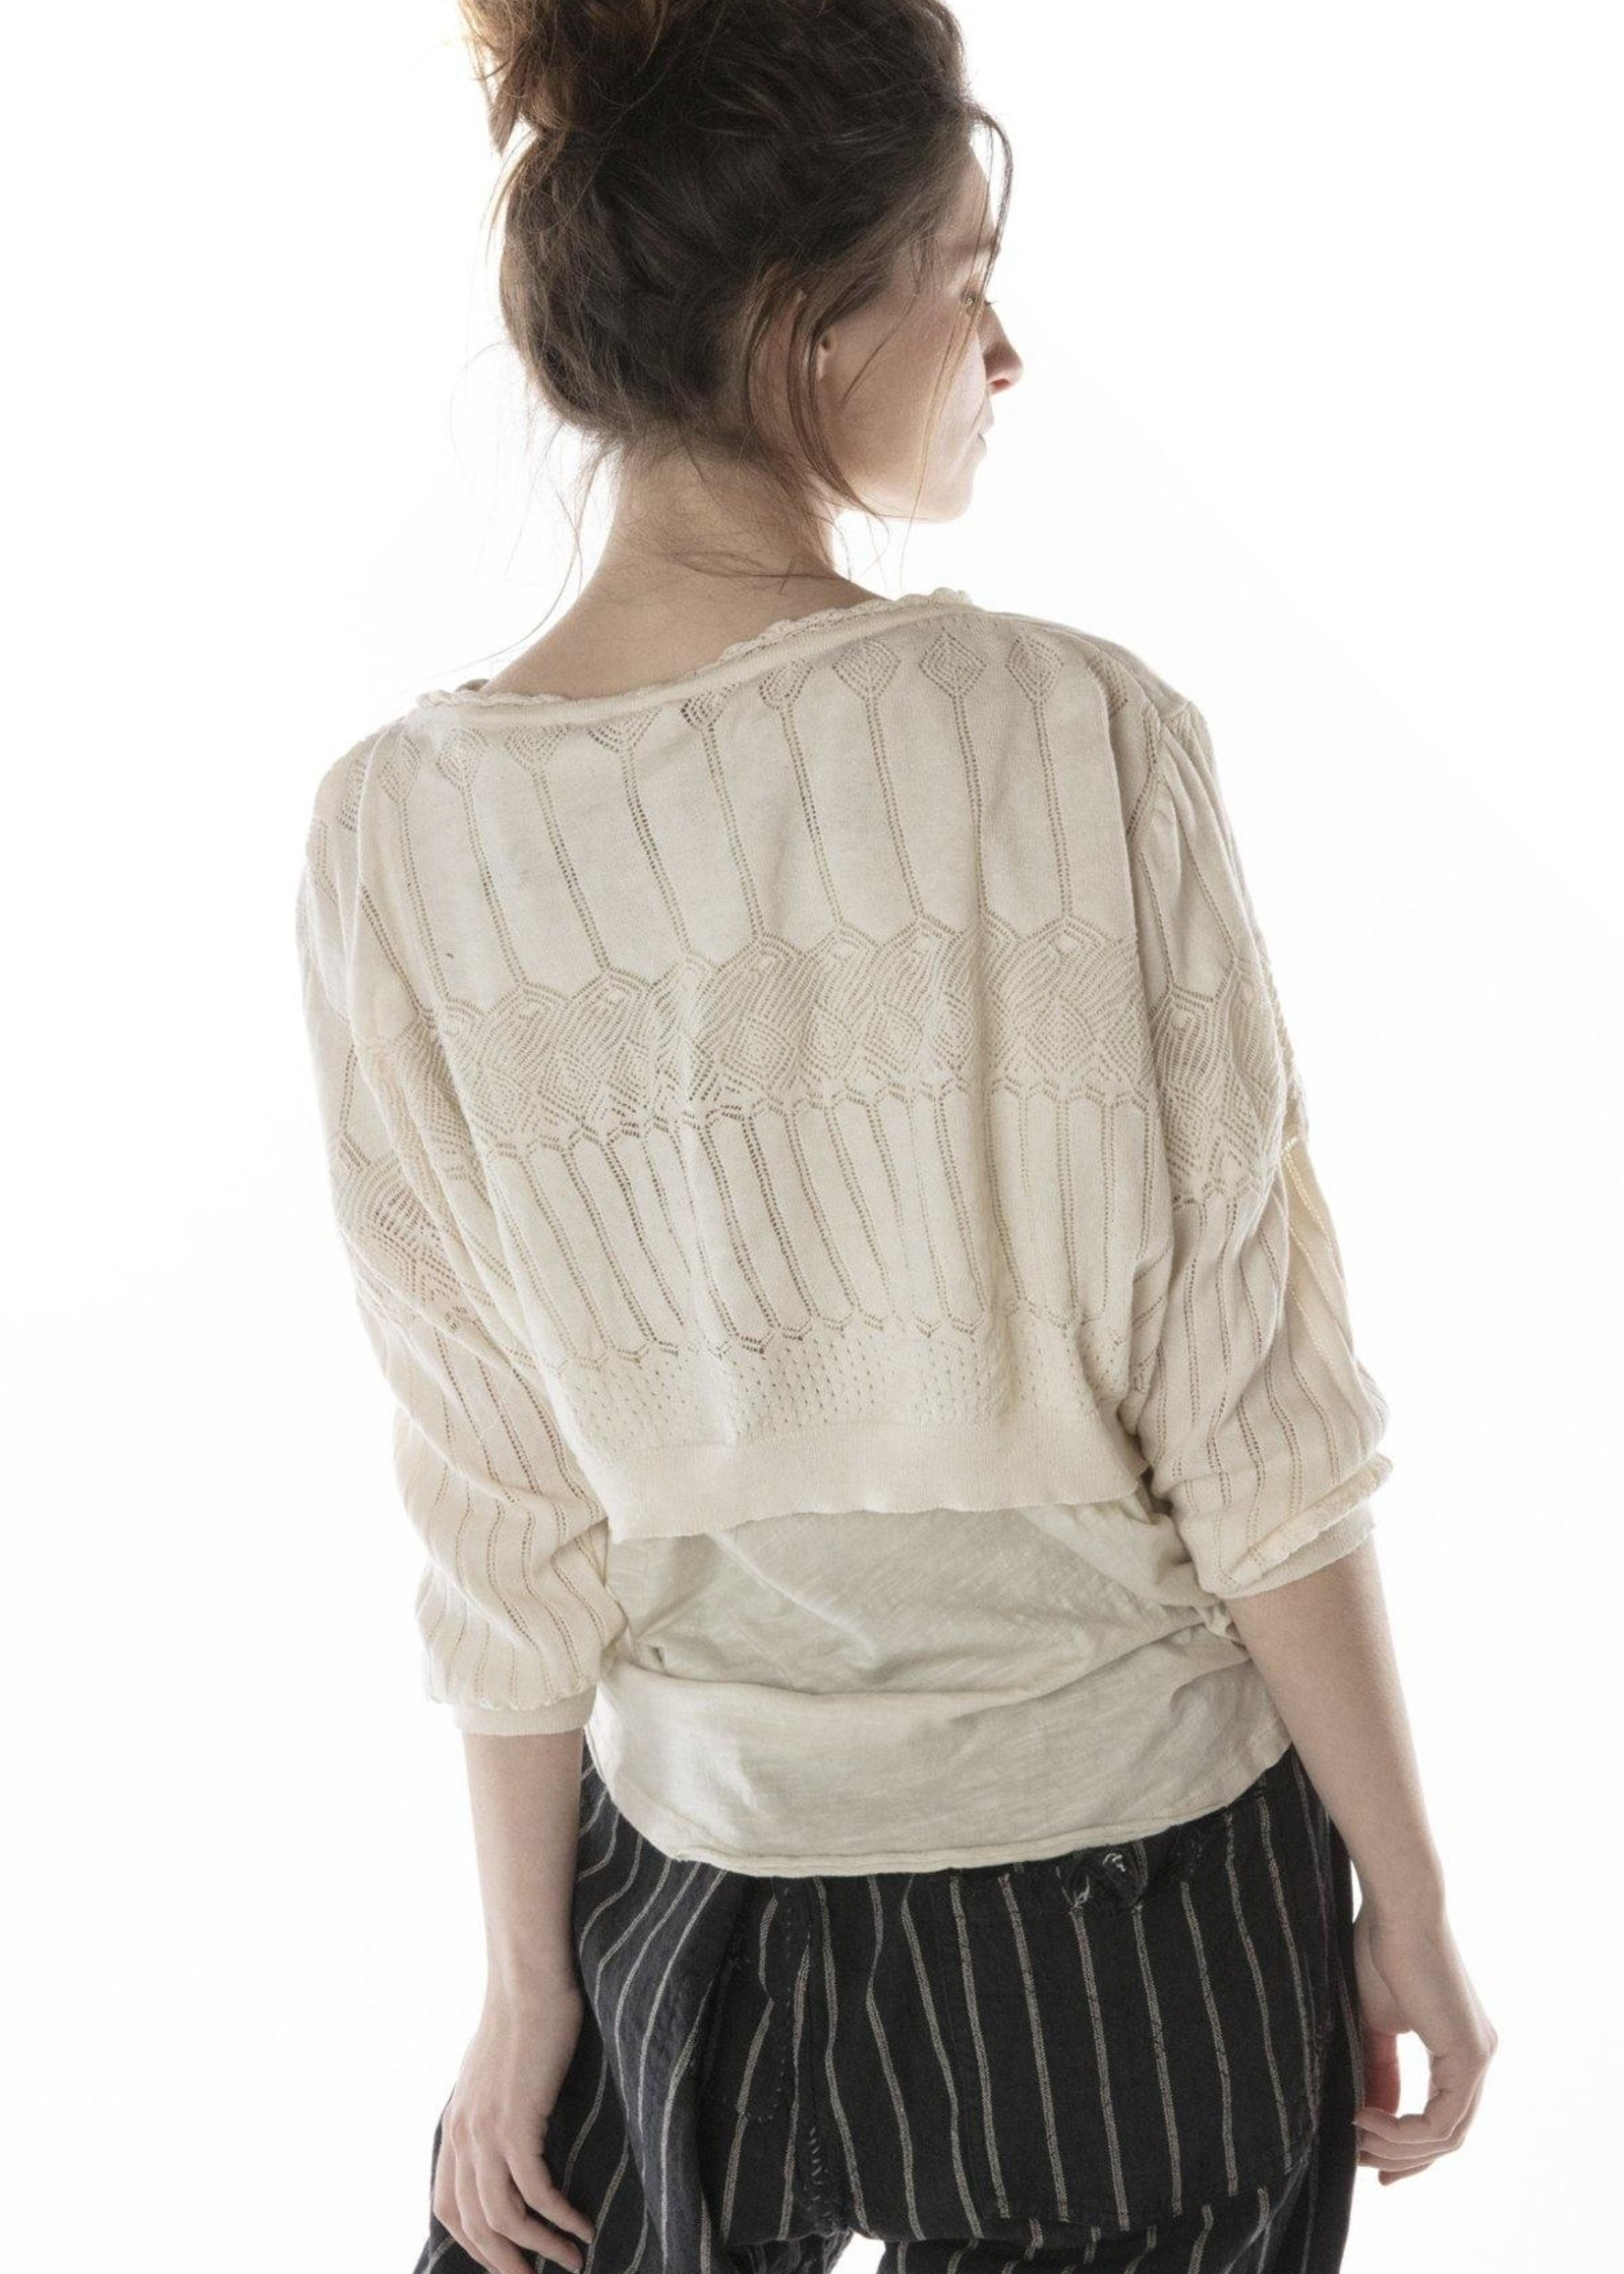 Magnolia Pearl Hadley Cropped Sweater - Antique White